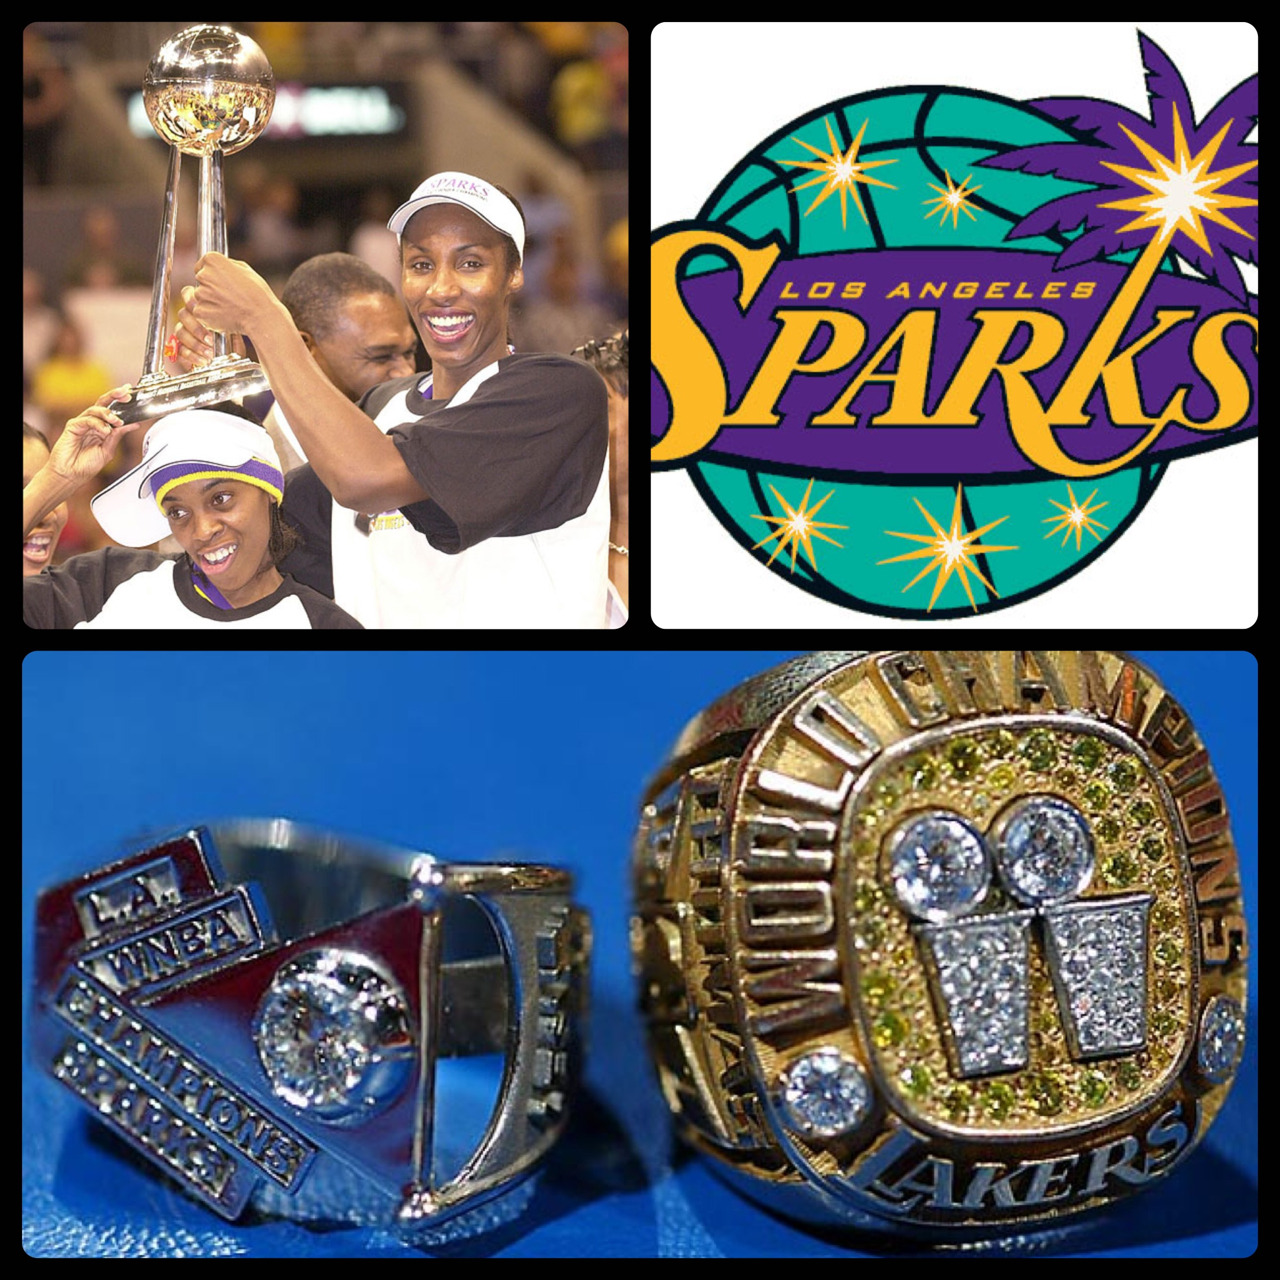 This Day In WNBA History: September 1,2001 - The Los Angeles Sparks claim their first WNBA Championship to give the city of Los Angeles a sweep of professional basketball titles. Lisa Leslie becomes first WNBA player to capture all three MVP awards (All-Star MVP, League MVP, Finals MVP) in the same season, joining NBA greats Shaquille O'Neal, Michael Jordan and Willis Reed as the only pro hoopsters to accomplish that feat. Sparks coach Michael Cooper becomes the first person to claim NBA and WNBA titles, having won five championships as a player with the Lakers.  keepinitrealsports.tumblr.com  pinterest.com/mysterkeepinit  Instagram - @Myster_Keepinit  Twitter - @MysterKeepinit  keepinitrealsports.wordpress.com  flickr.com/keepinit_real_sports